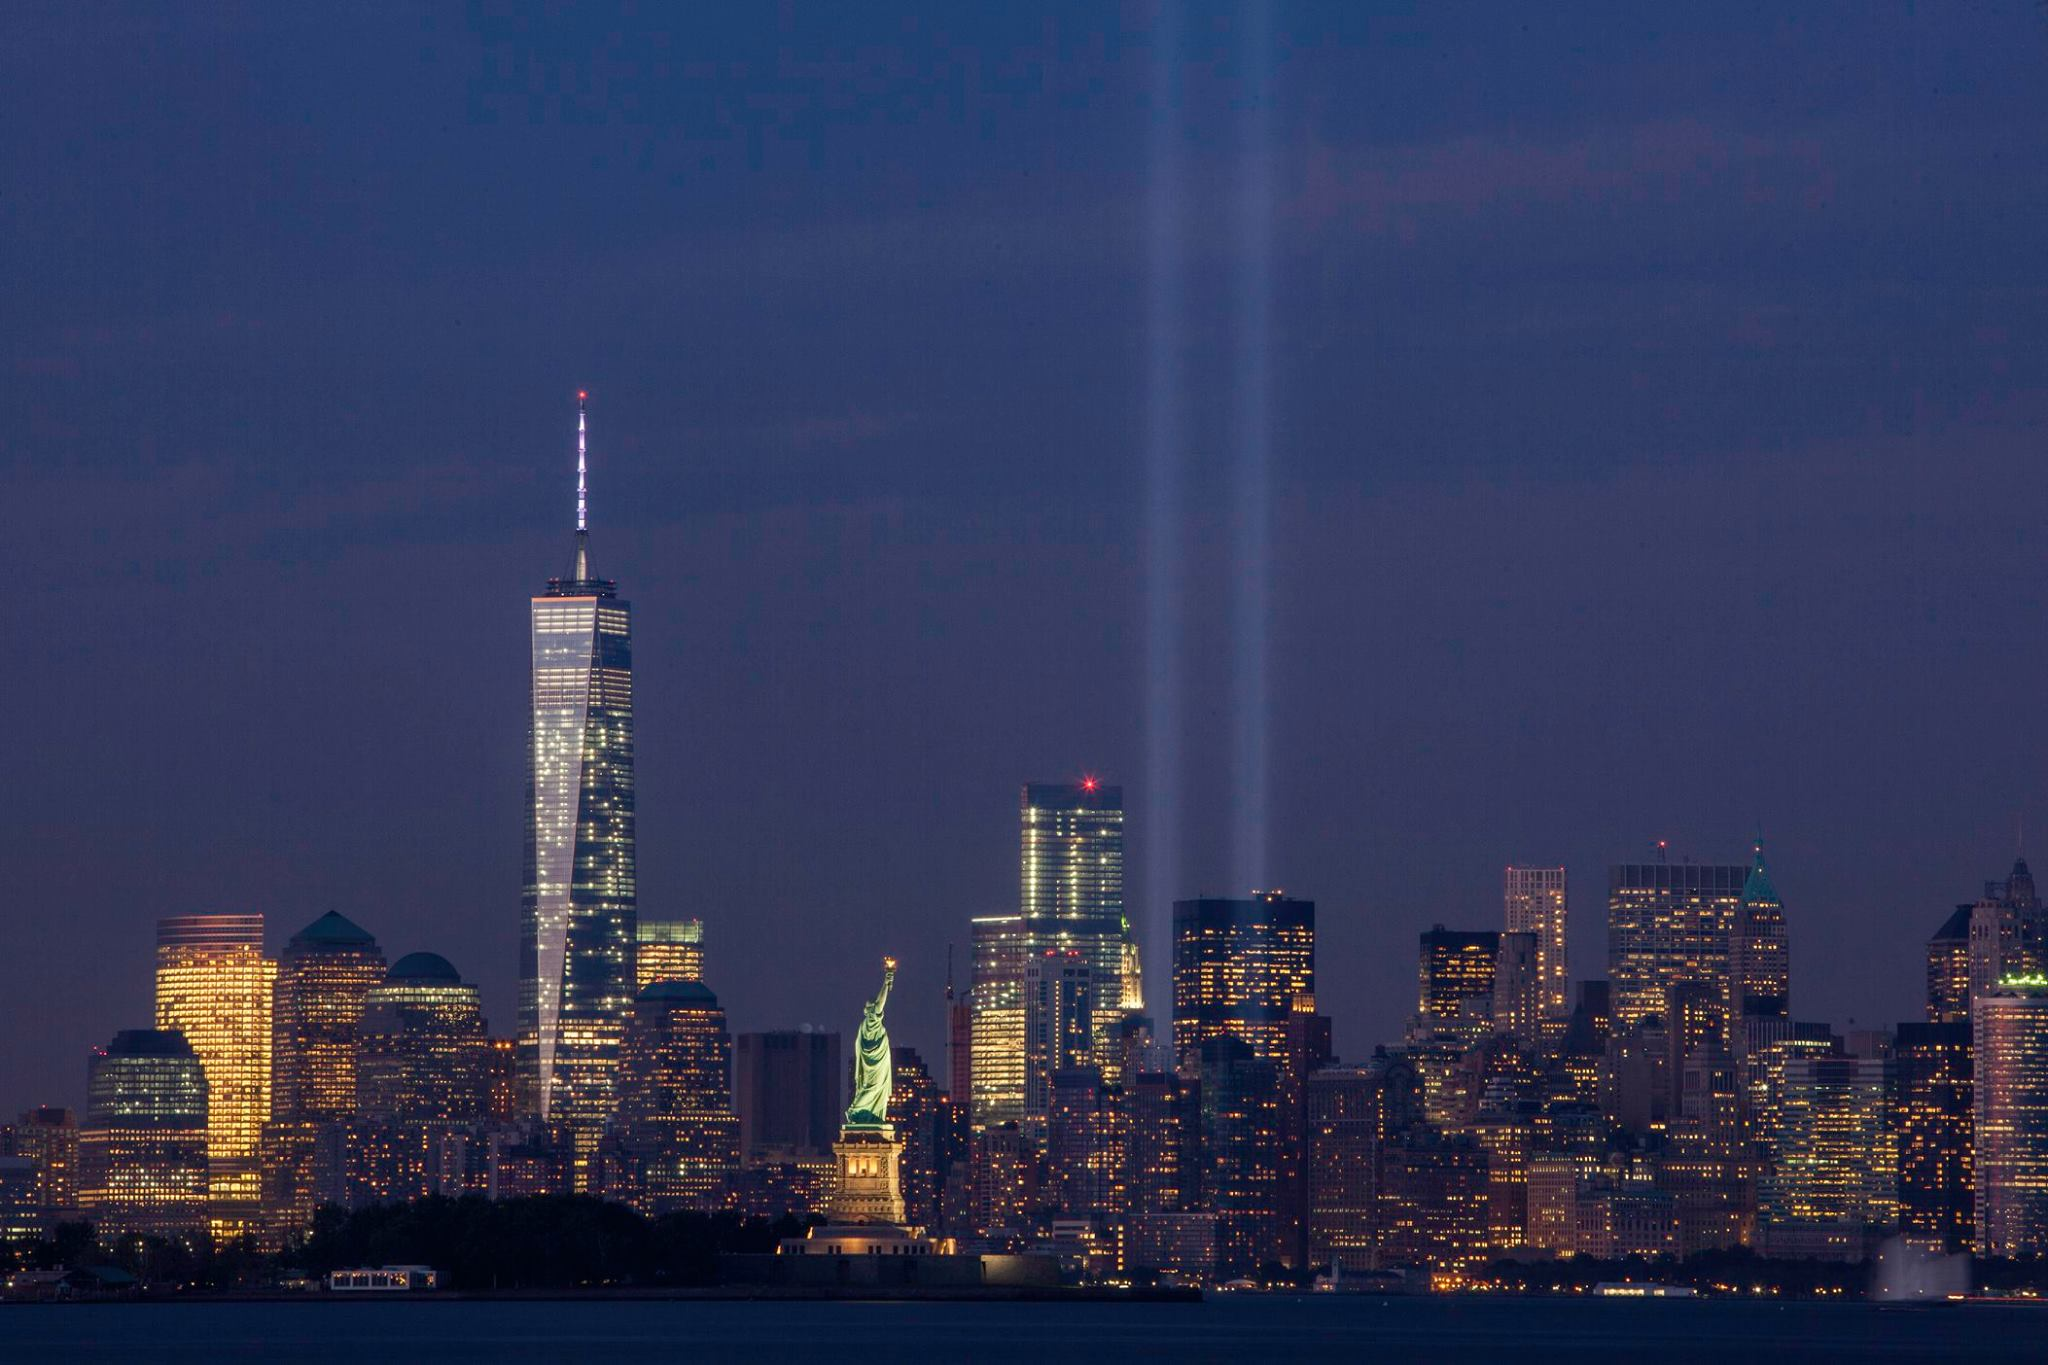 May We #NeverForget That We Are Never Invincible